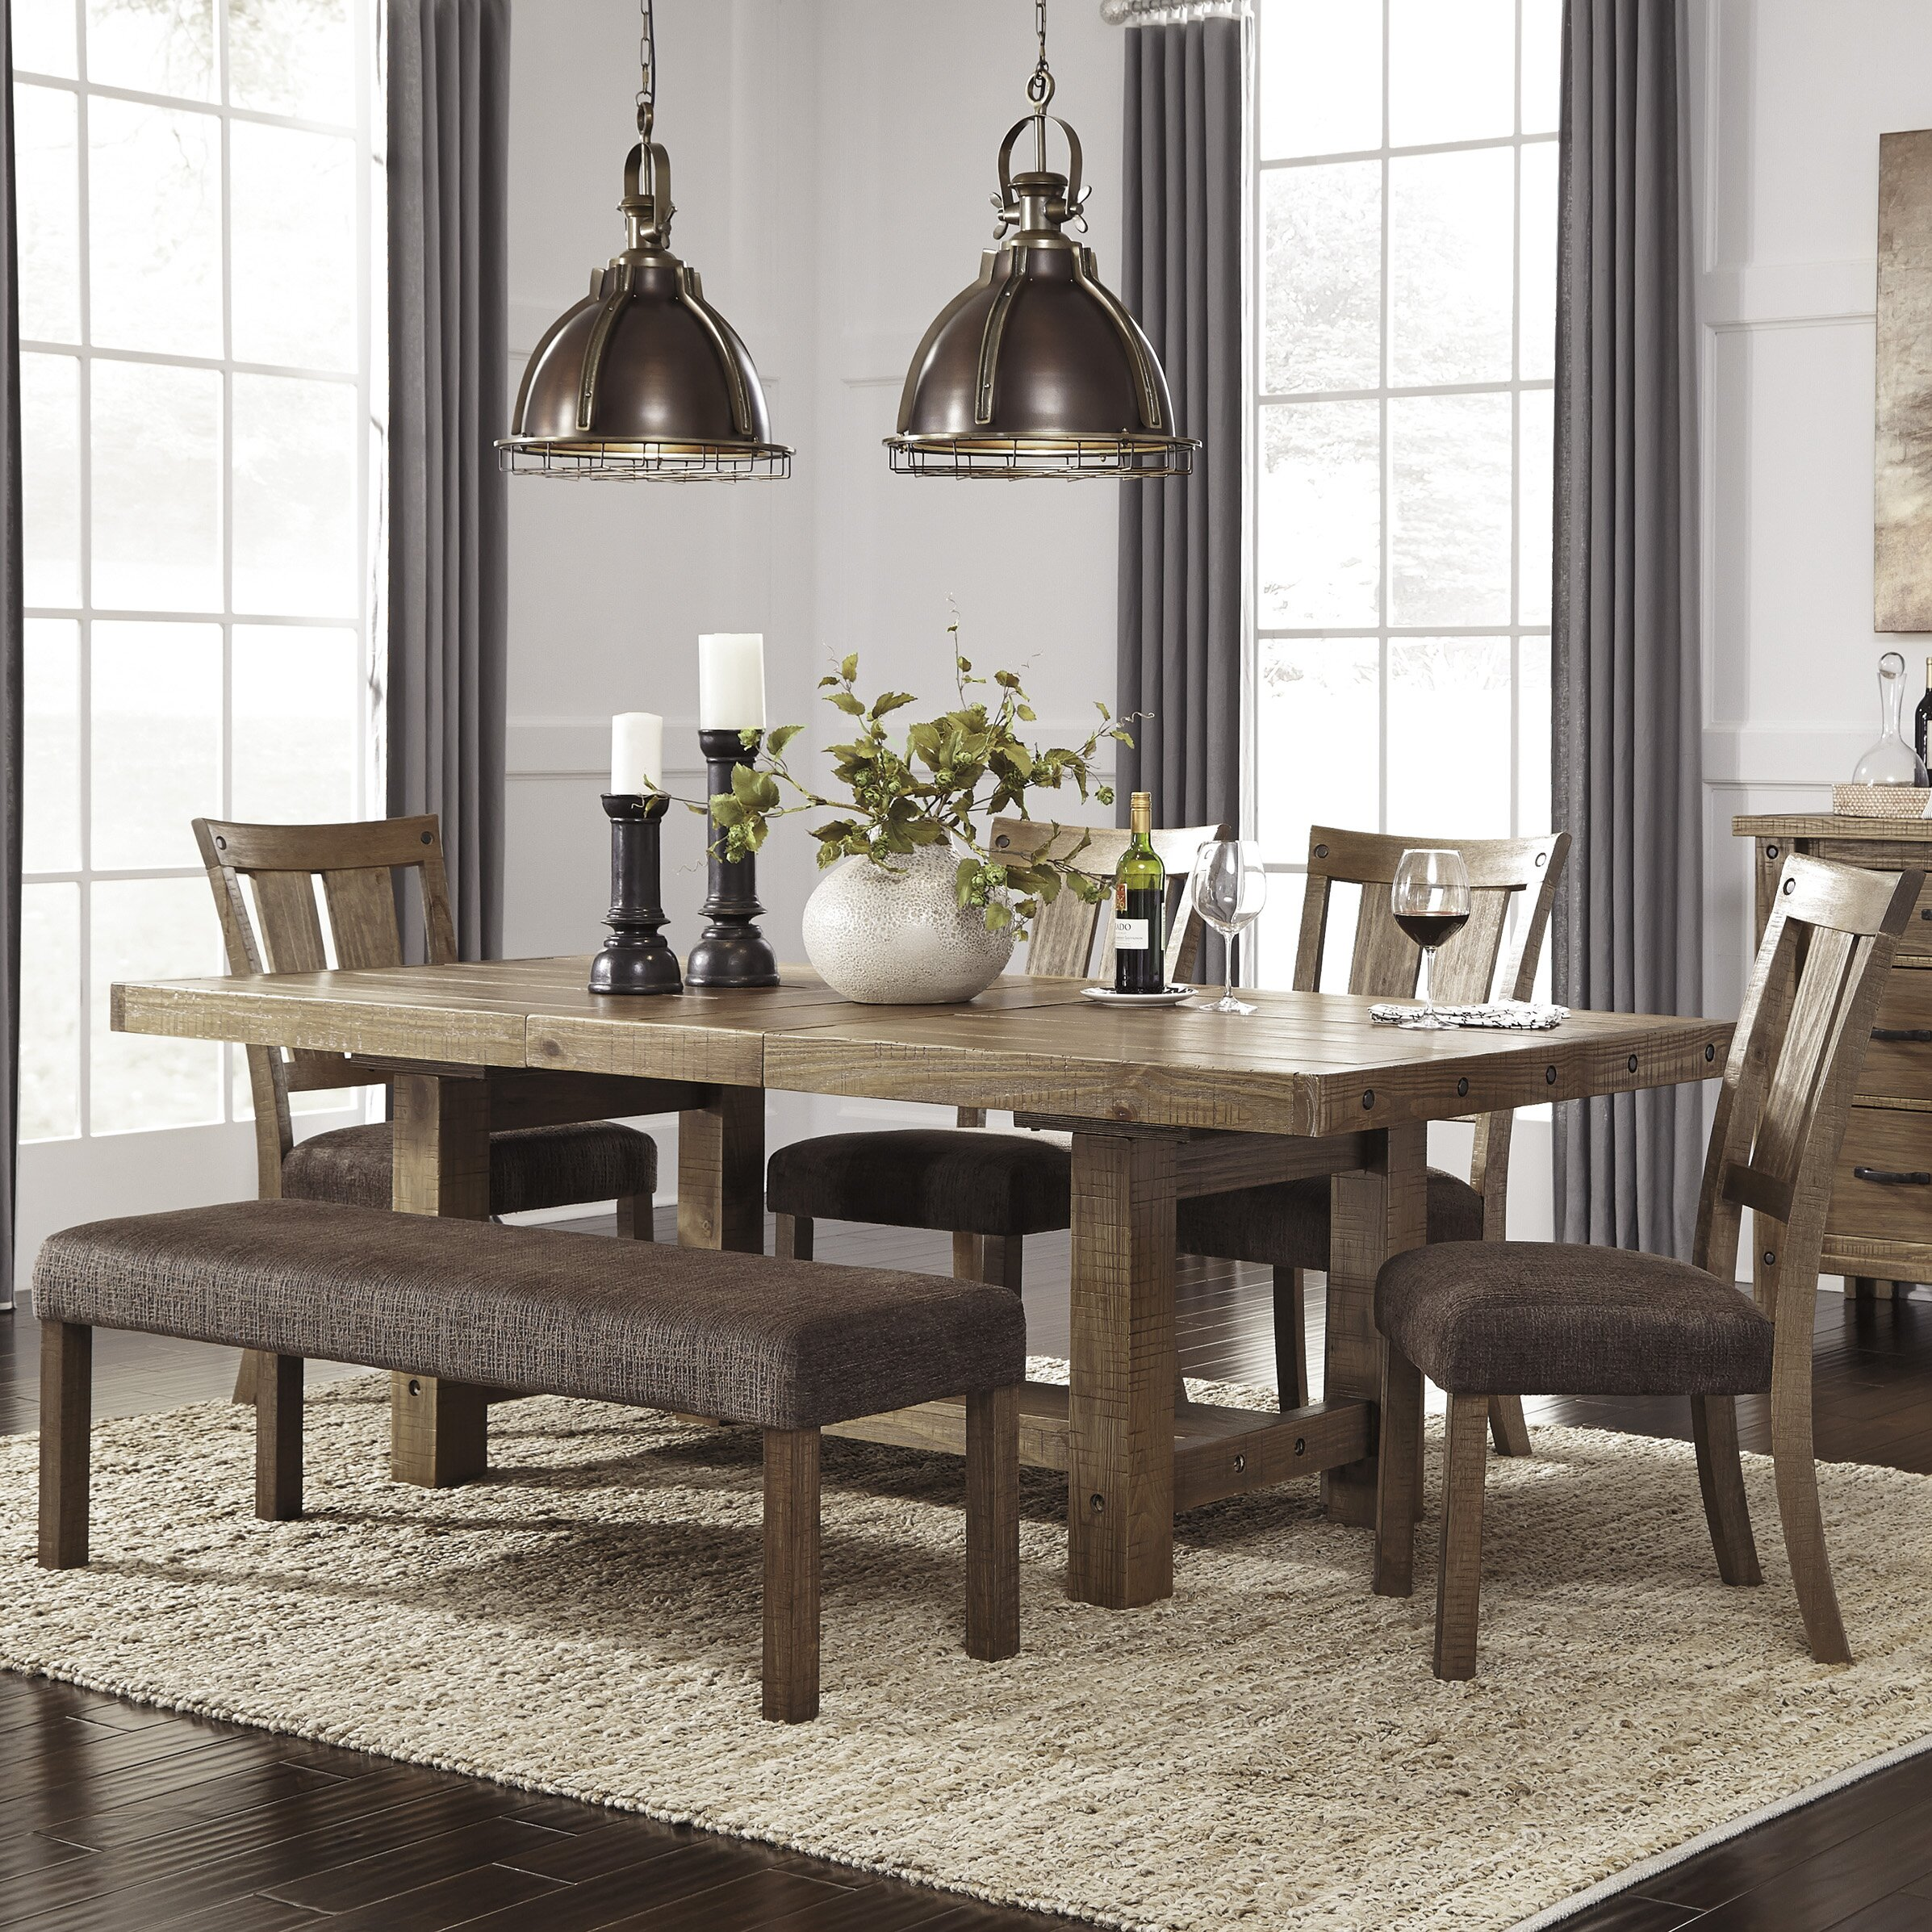 Signature design by ashley 9 piece dining set reviews for Best dining sets